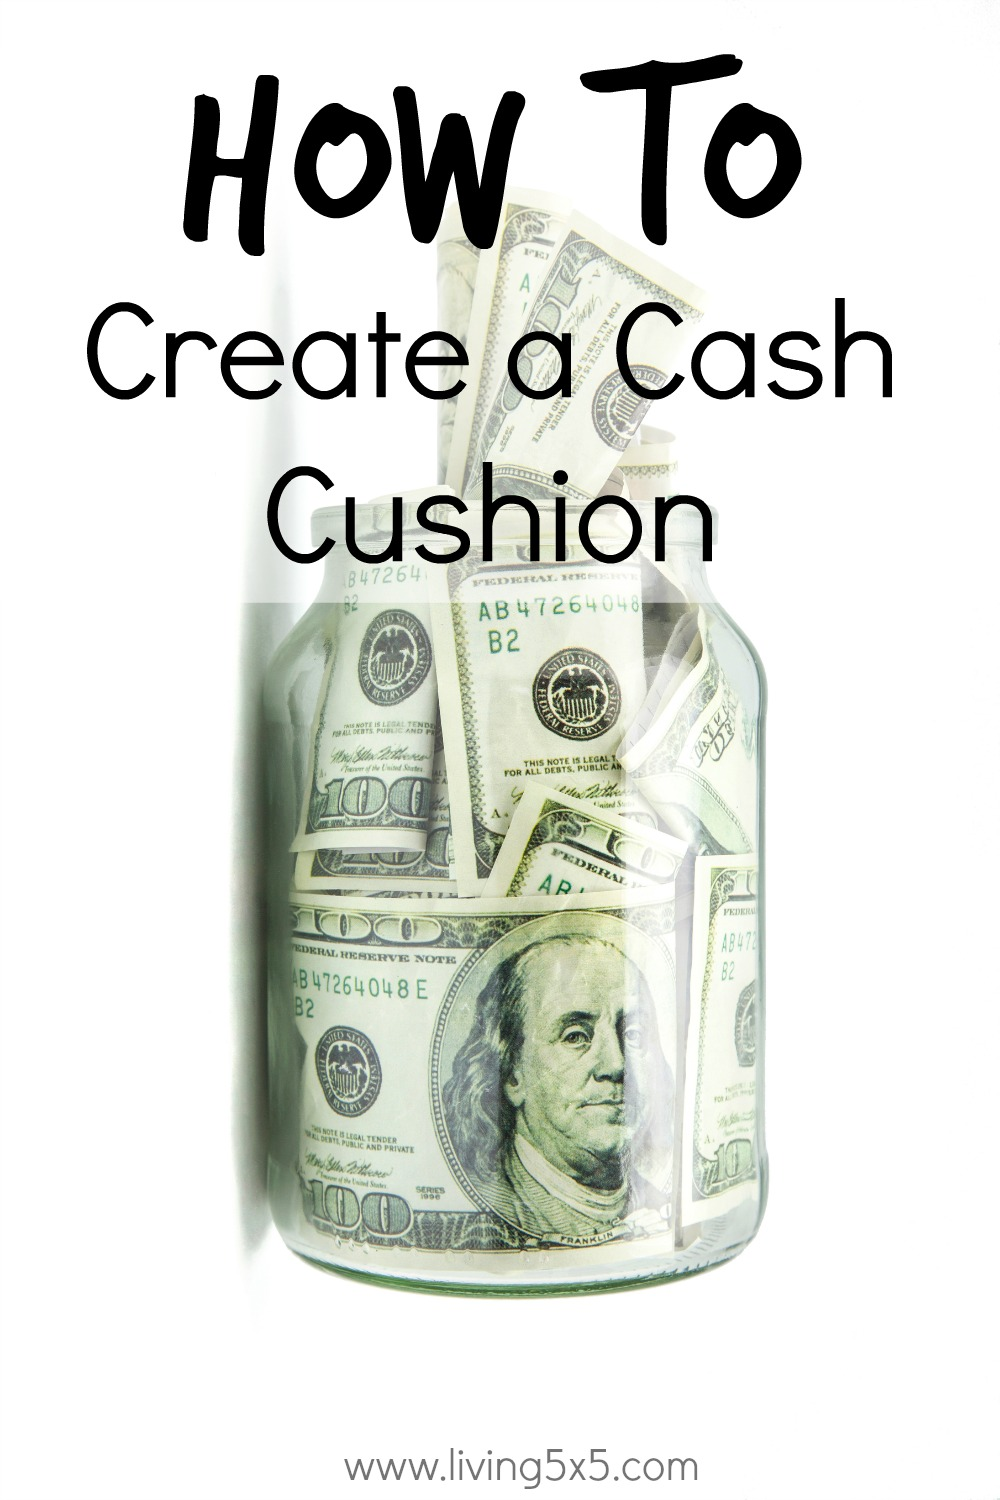 Learning How to Create a Cash Cushion can help save you money. Get 3 simple tips to help you start.